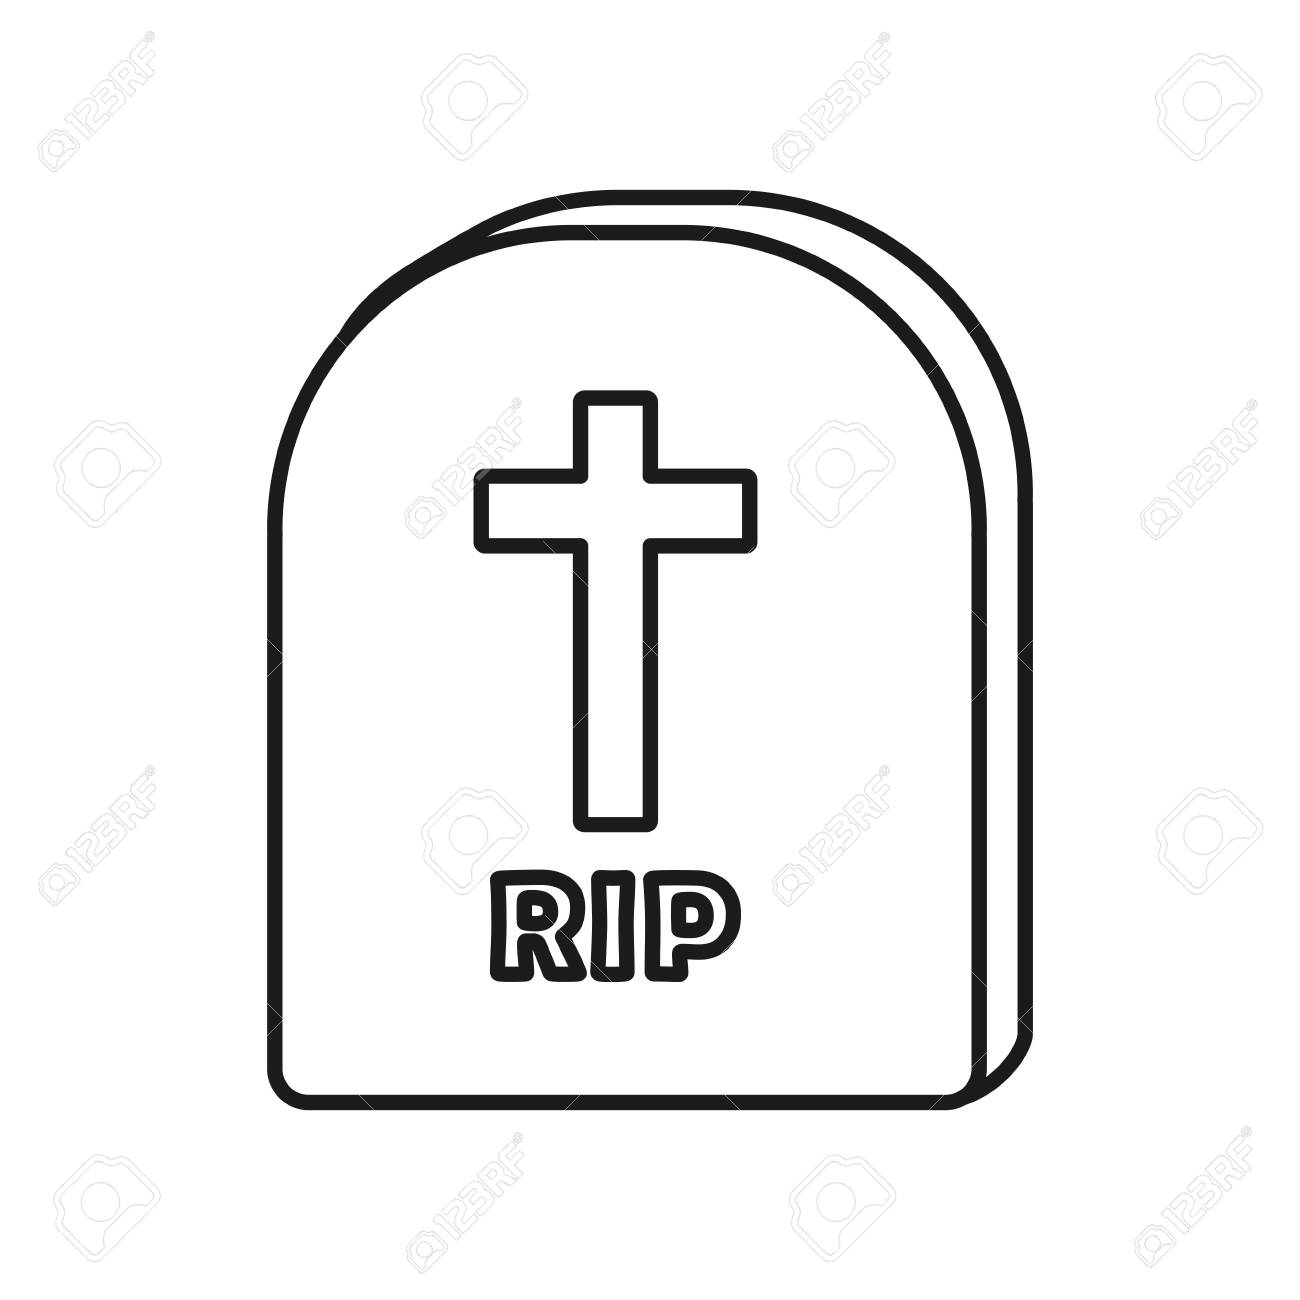 tombstone icon over white background, vector illustration - 124833806